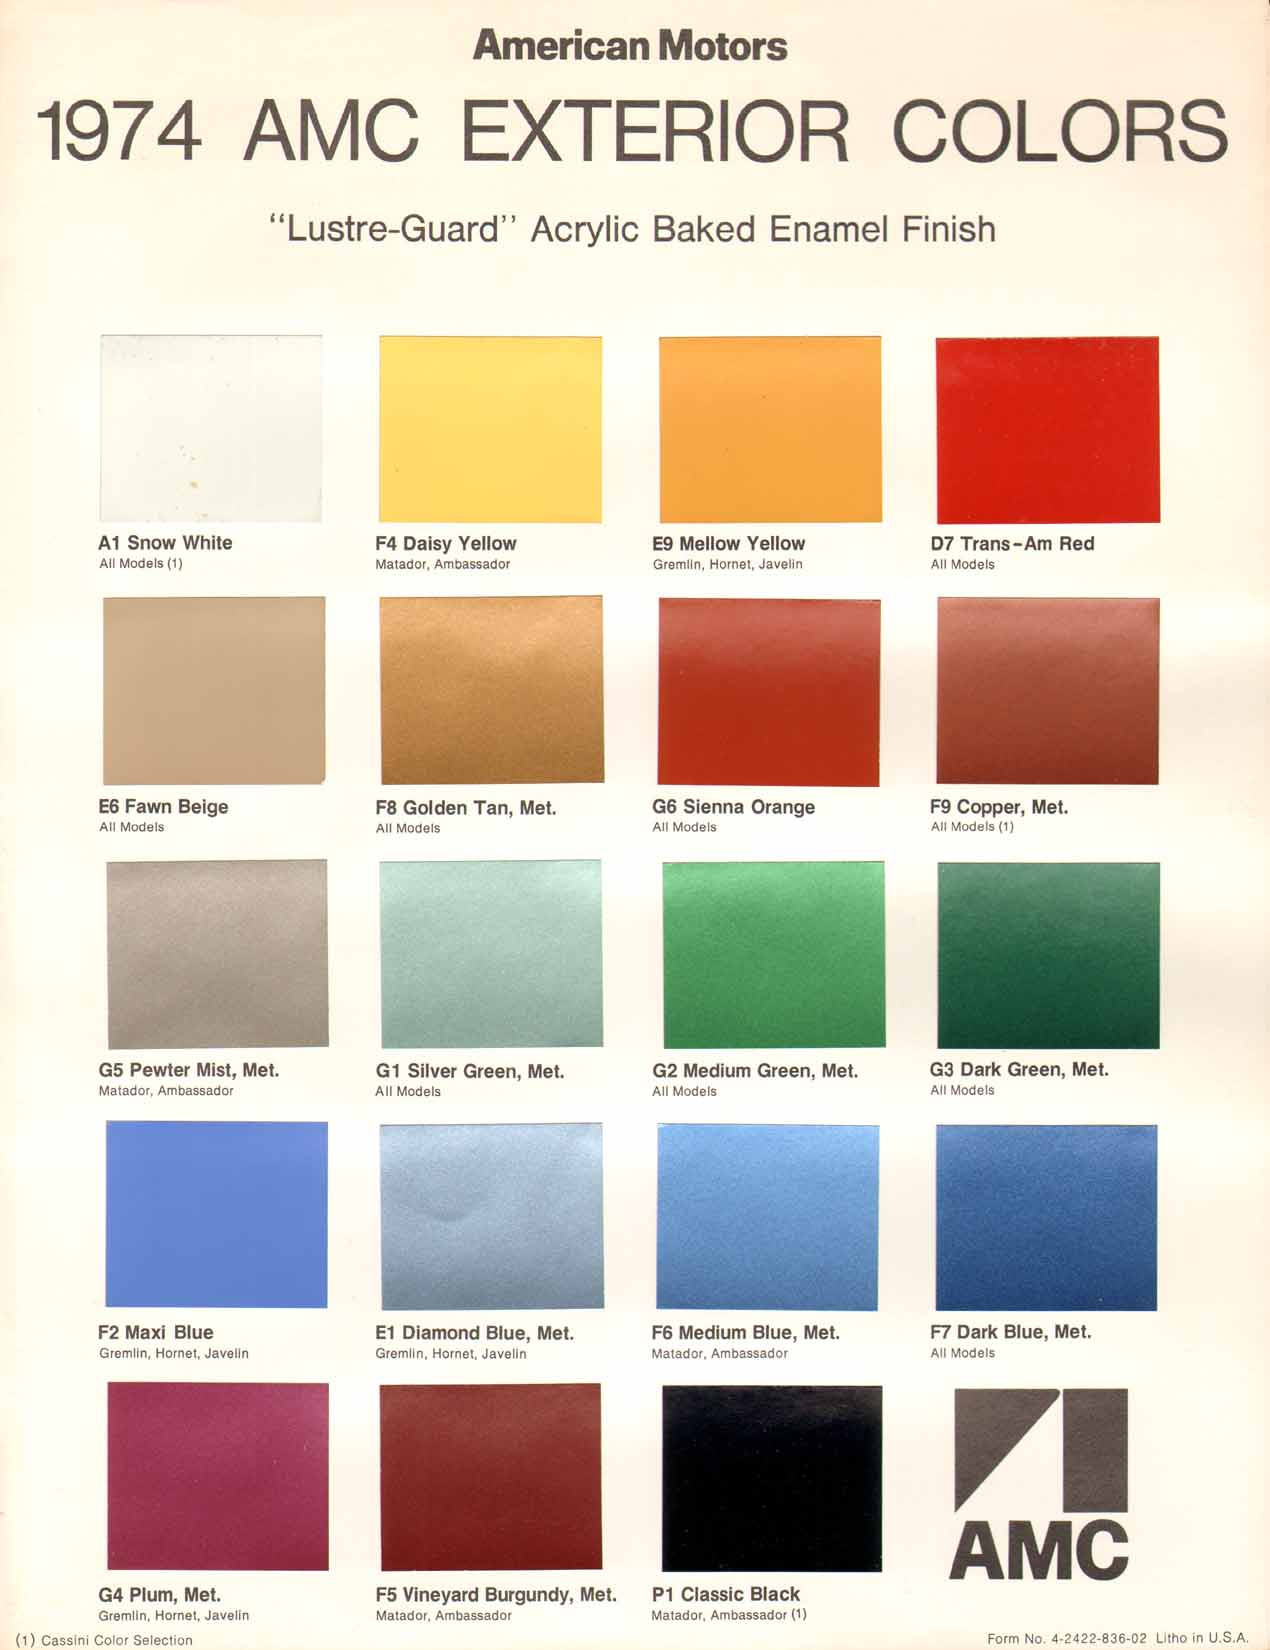 1974 amc exterior color chart page 1 of 2 full size image nvjuhfo Choice Image